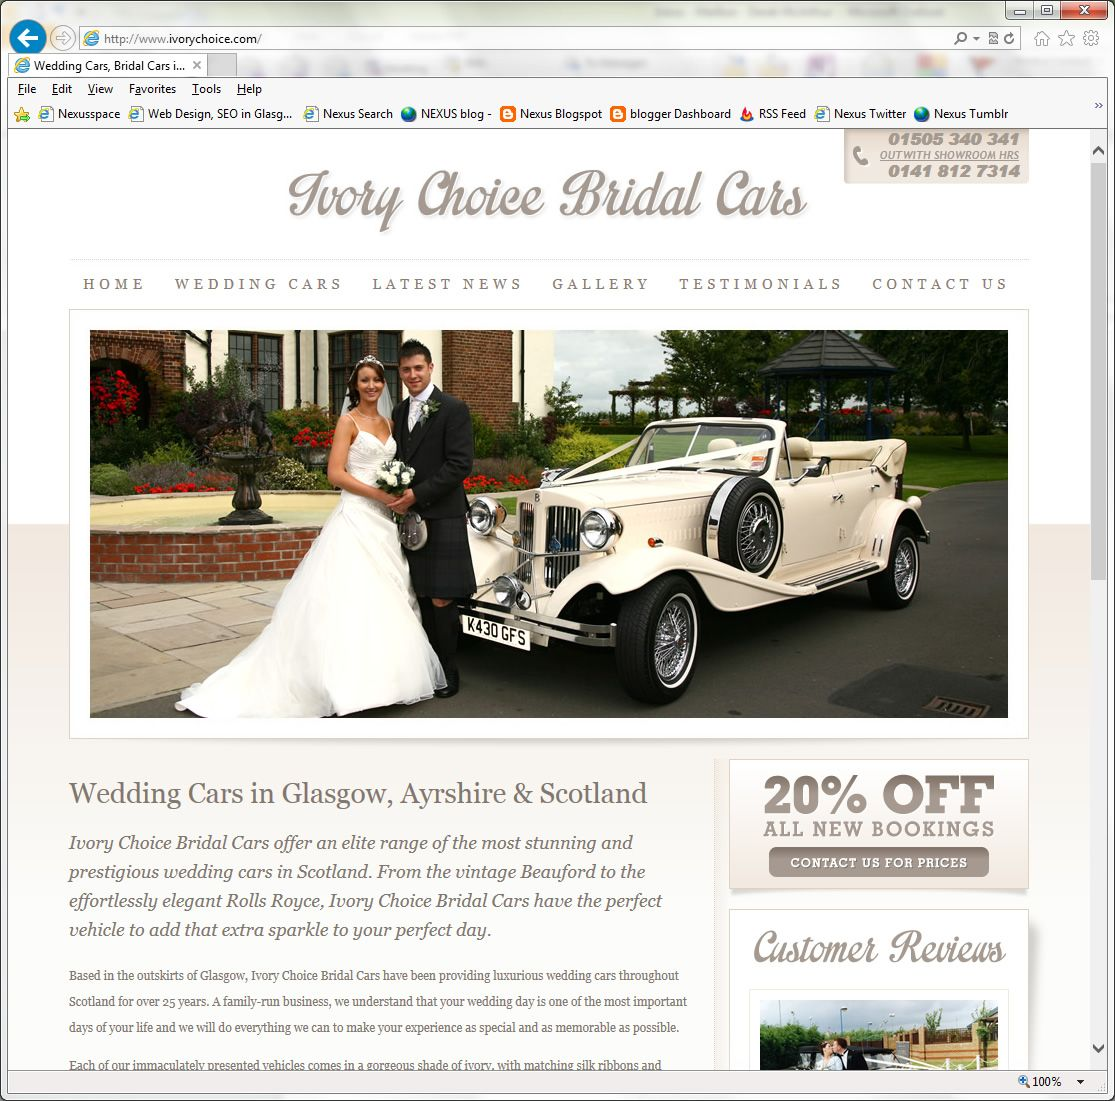 Ivory Choice Bridal Cars offer an elite range of the most stunning ...